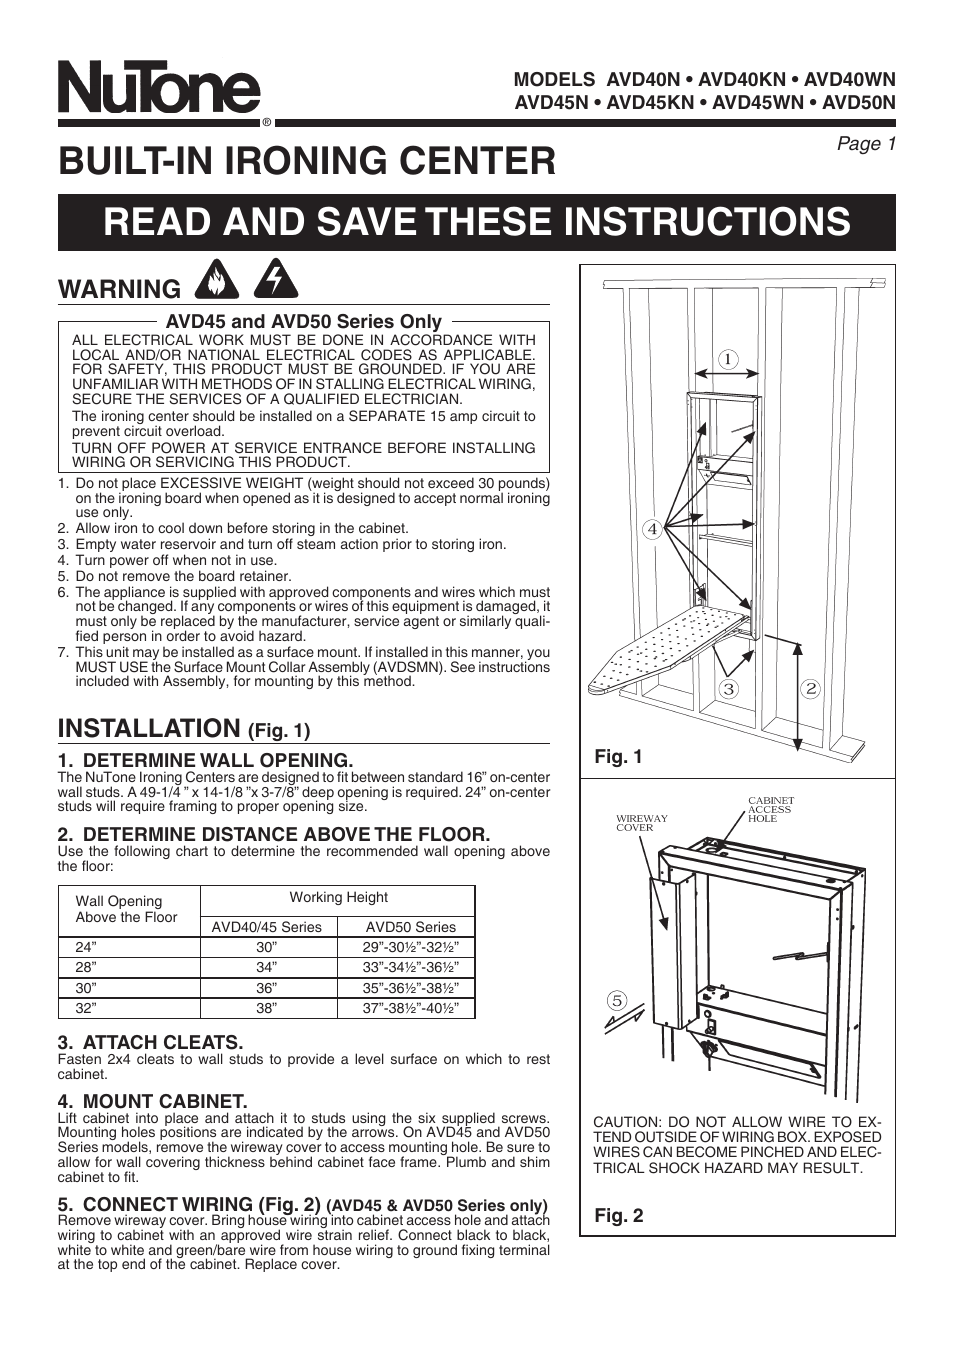 Nutone Avd50n User Manual 8 Pages Wiring Through Studs